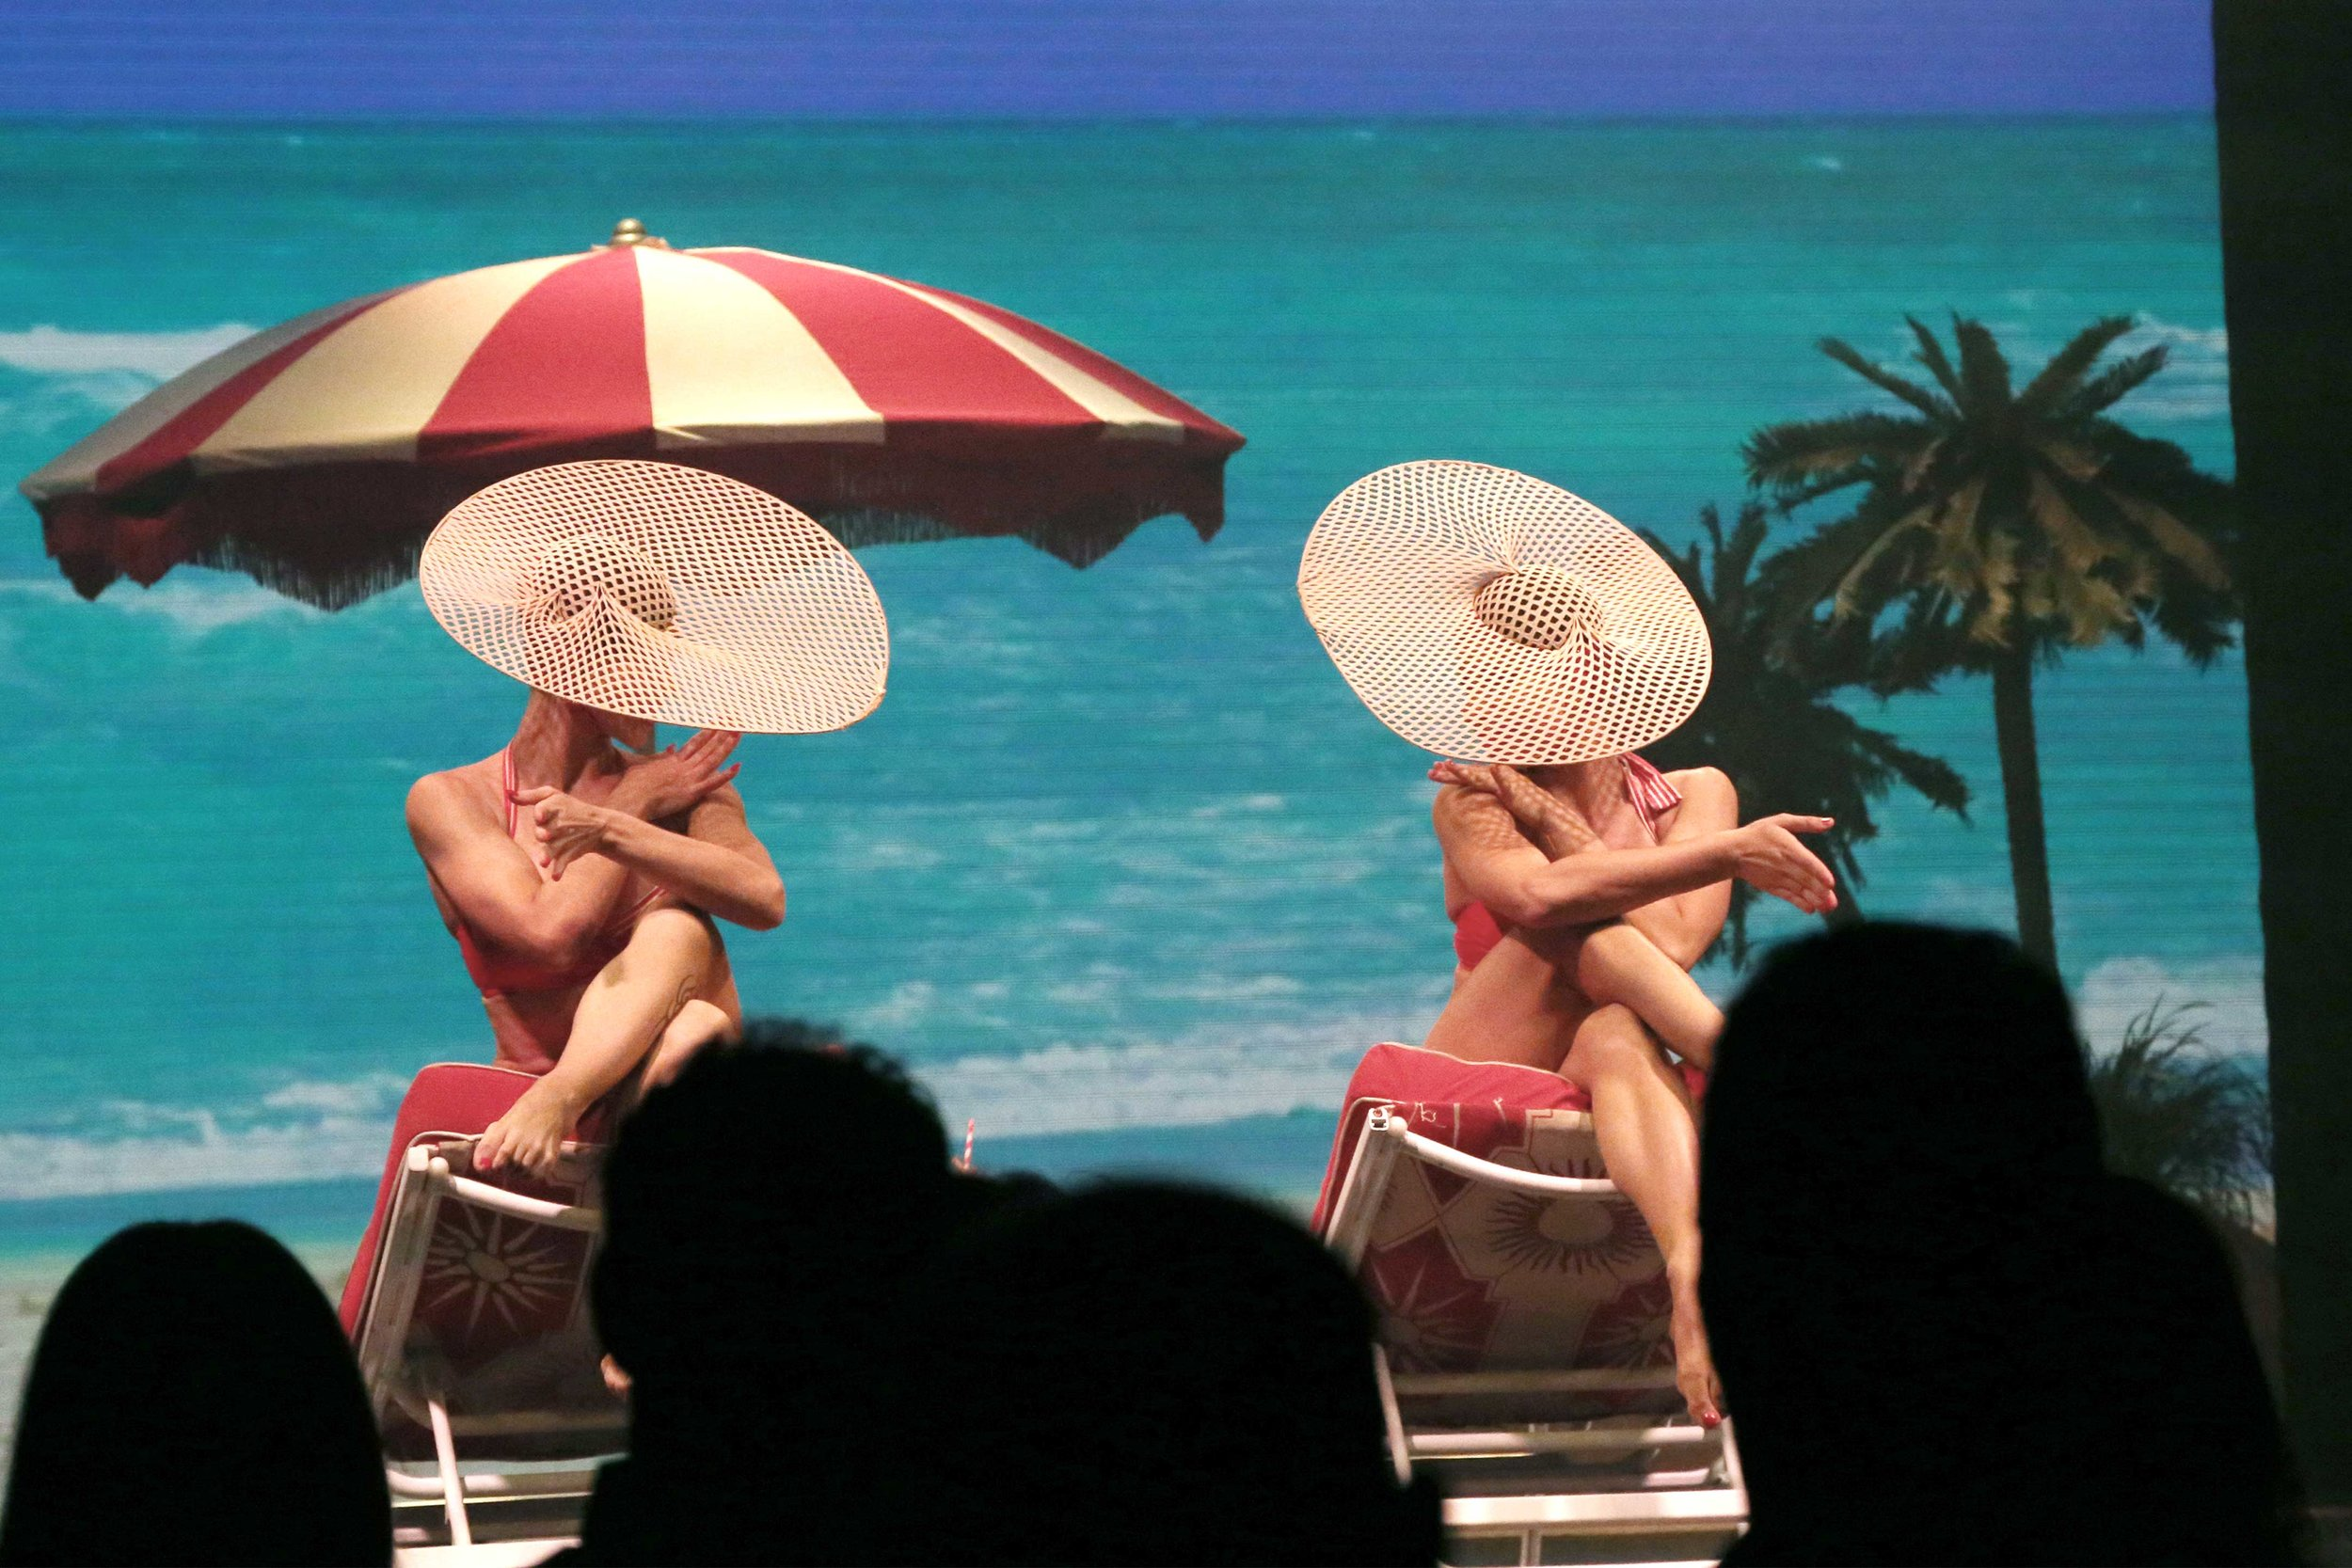 Performers-Faena2_resized.jpg